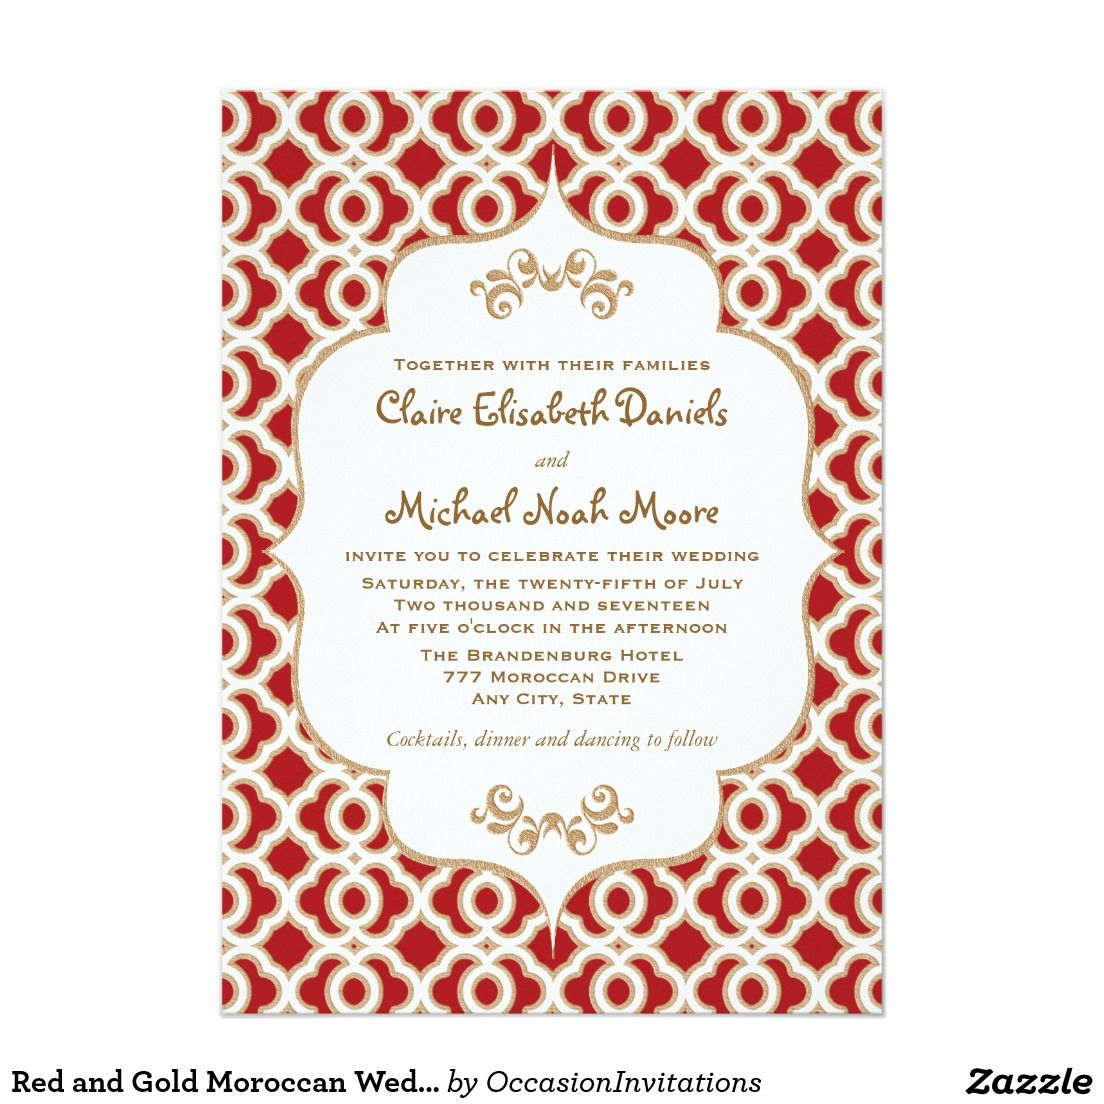 Red and Gold Moroccan Wedding Invitations Creative Wedding